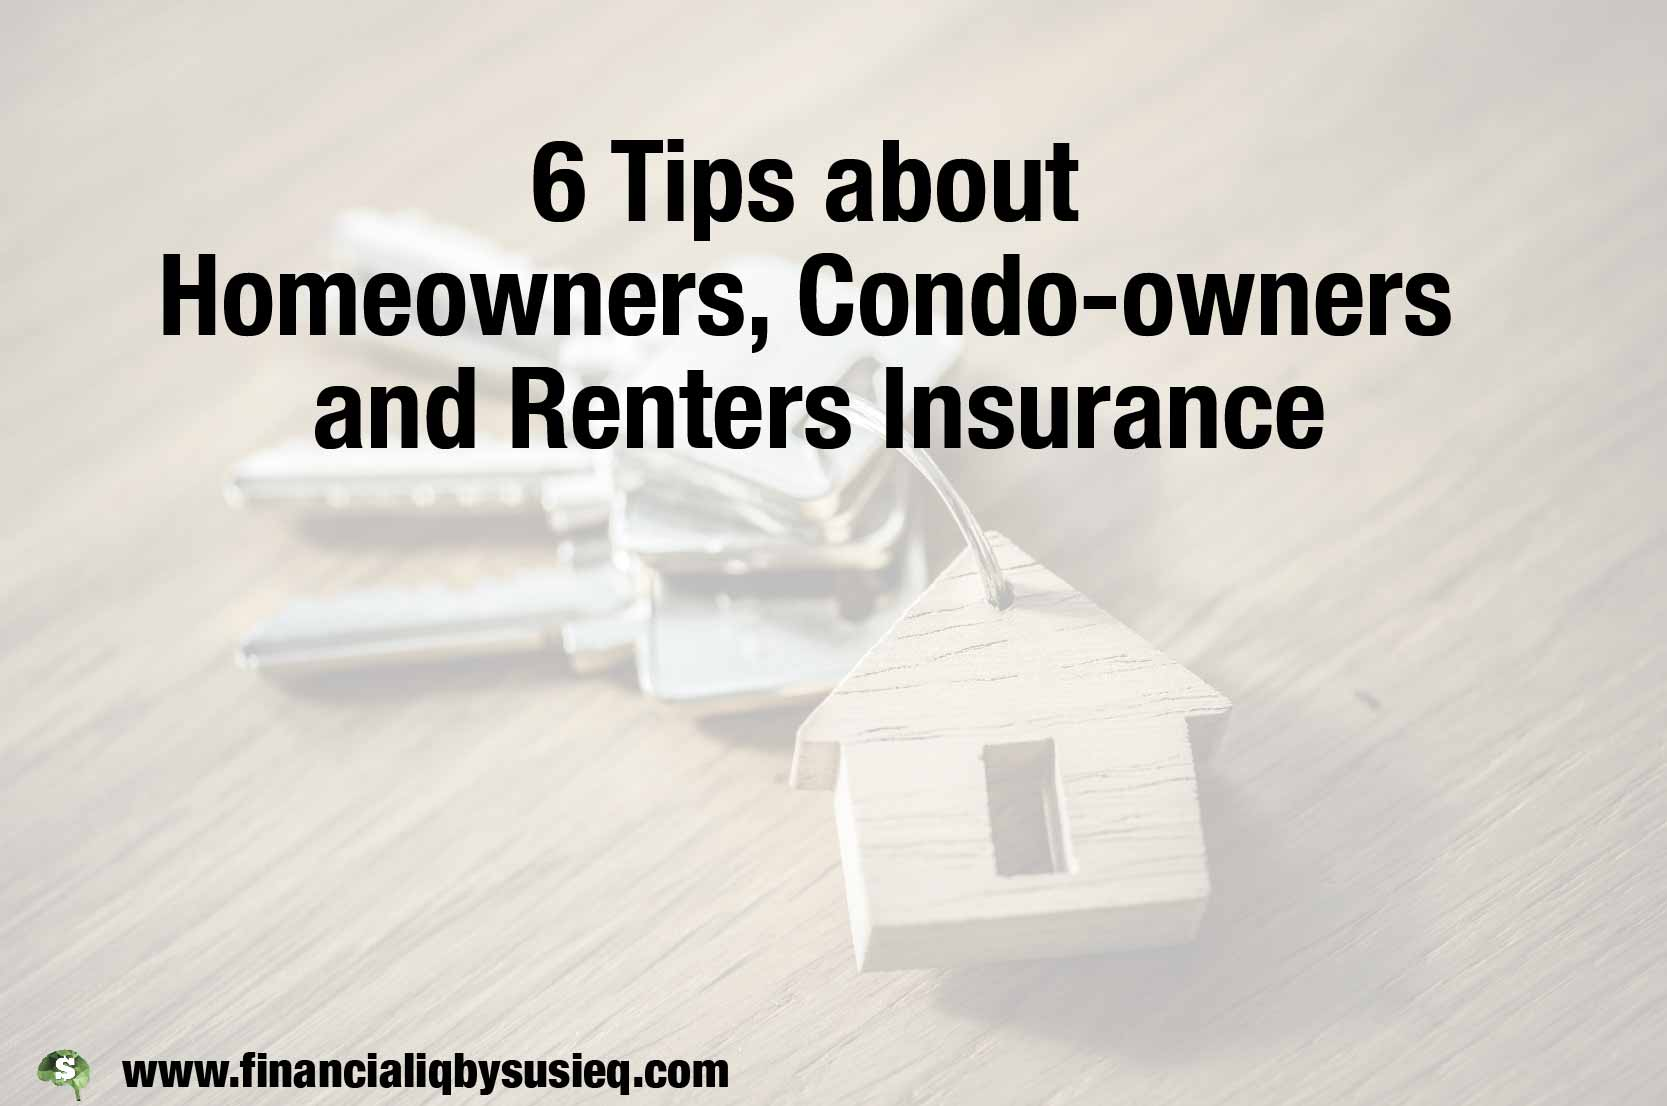 6 Tips About Homeowners Insurance